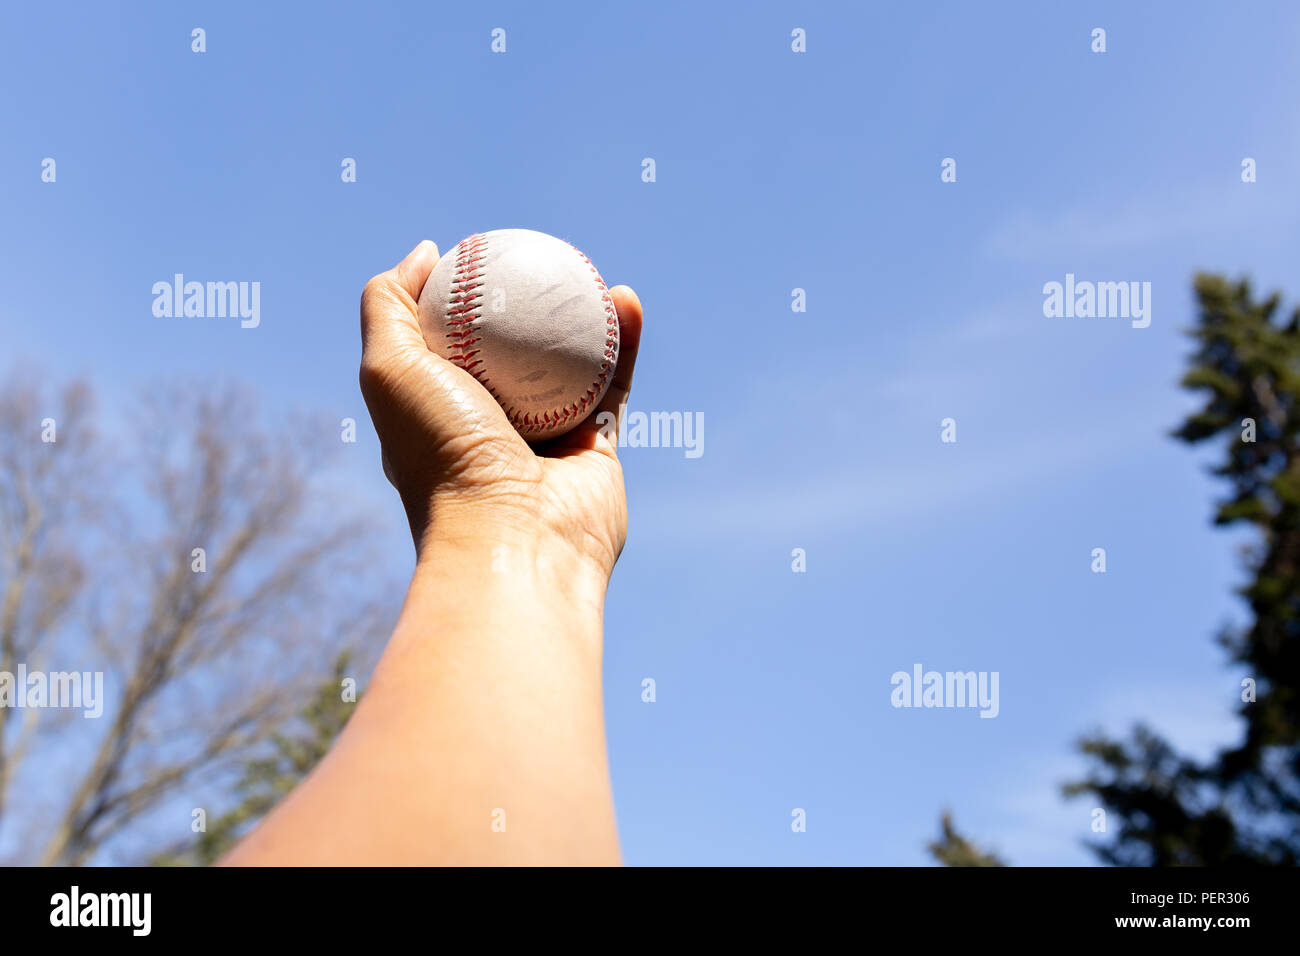 Hand holding baseball against blue clean sky with tree. - Stock Image